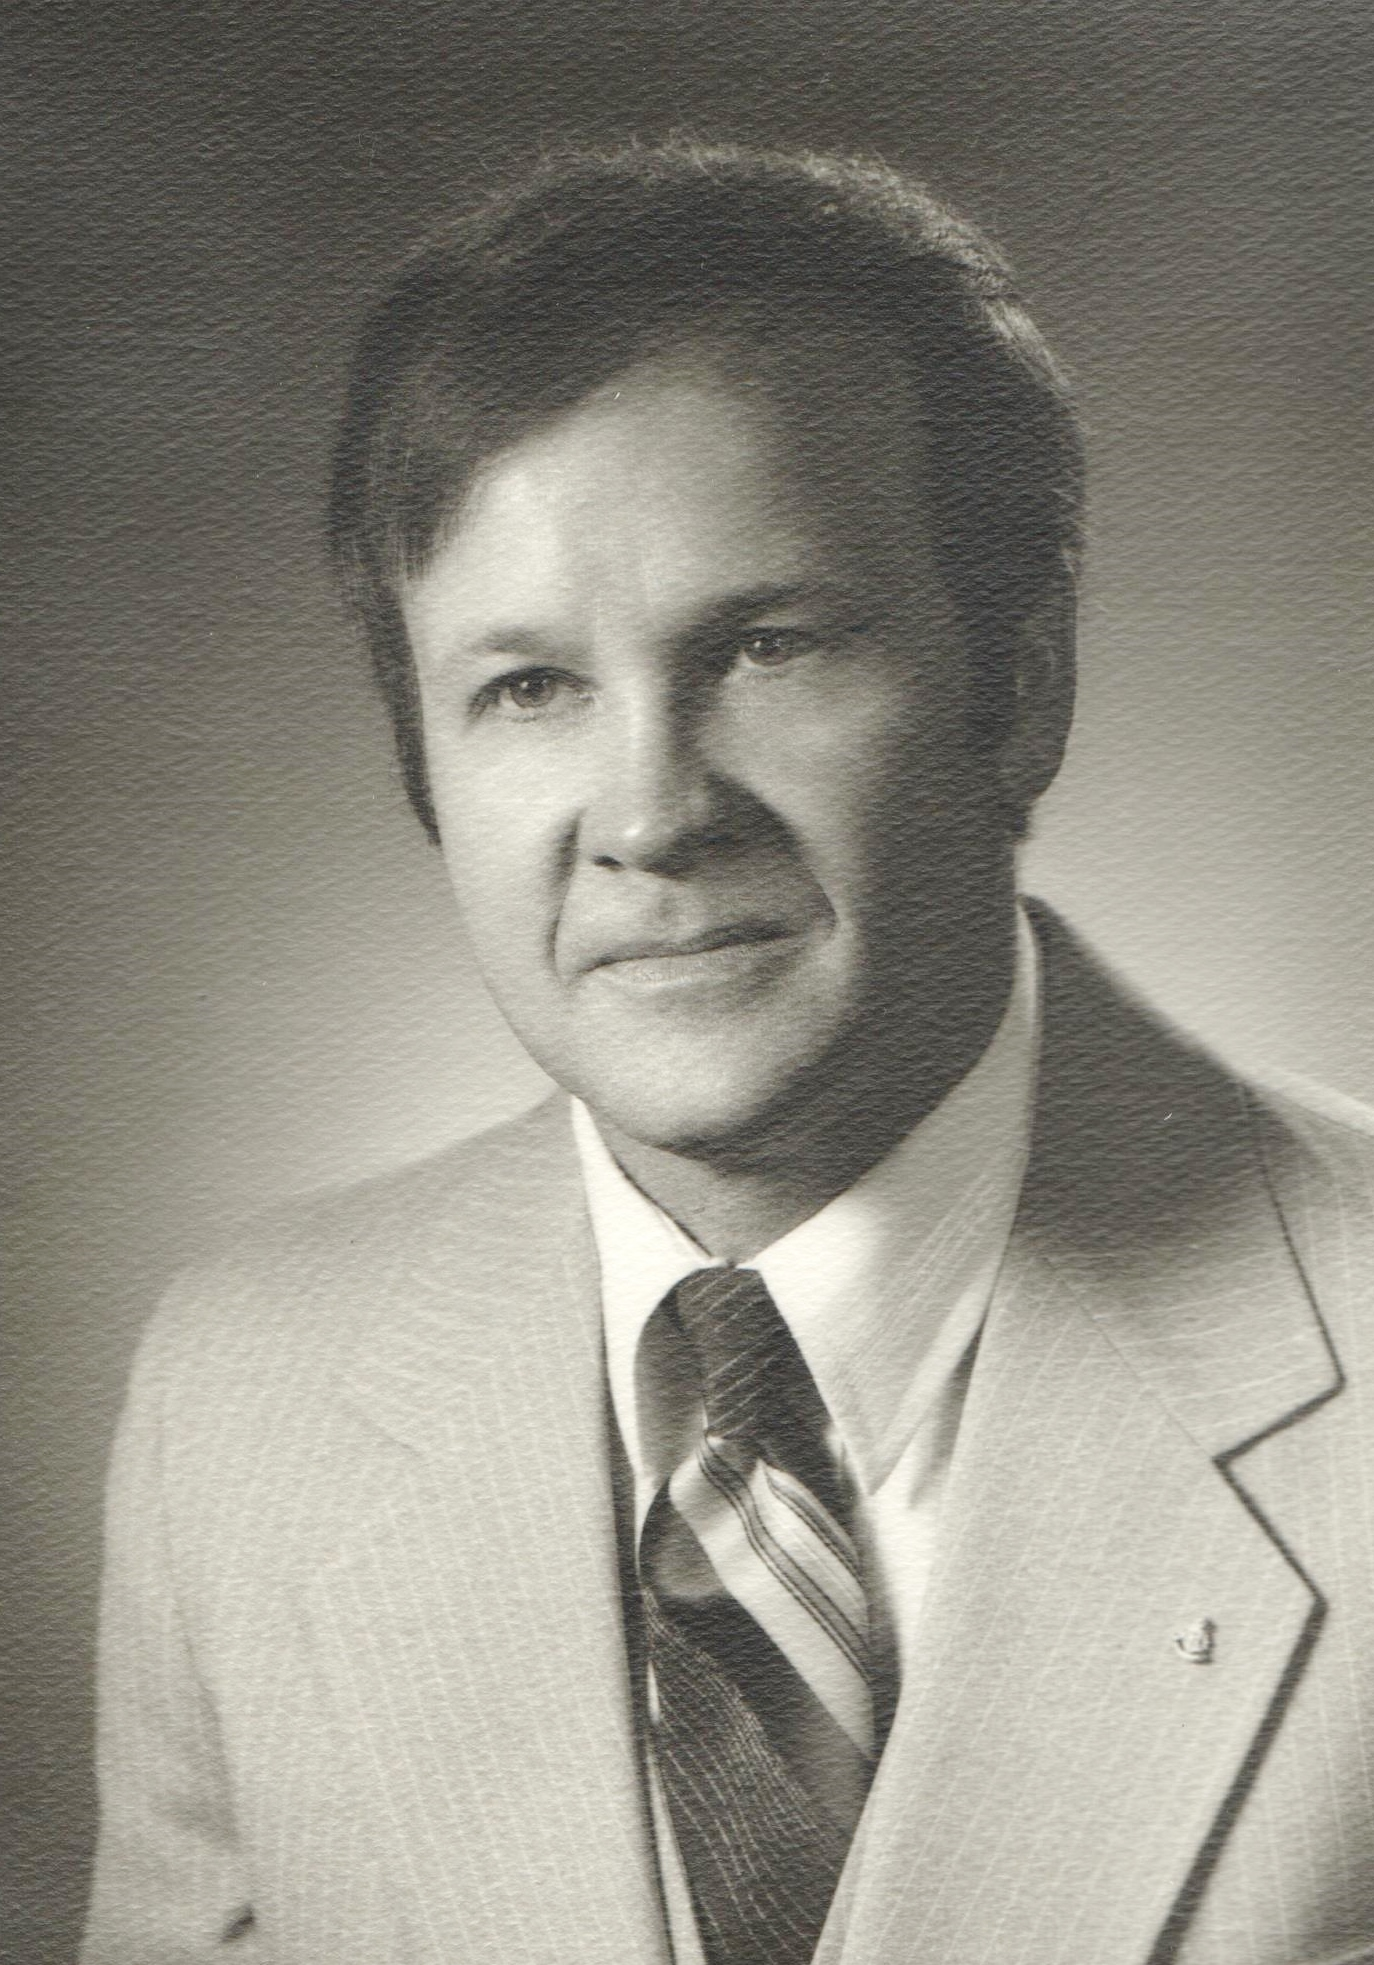 1982 & 1986 William K Keuhn